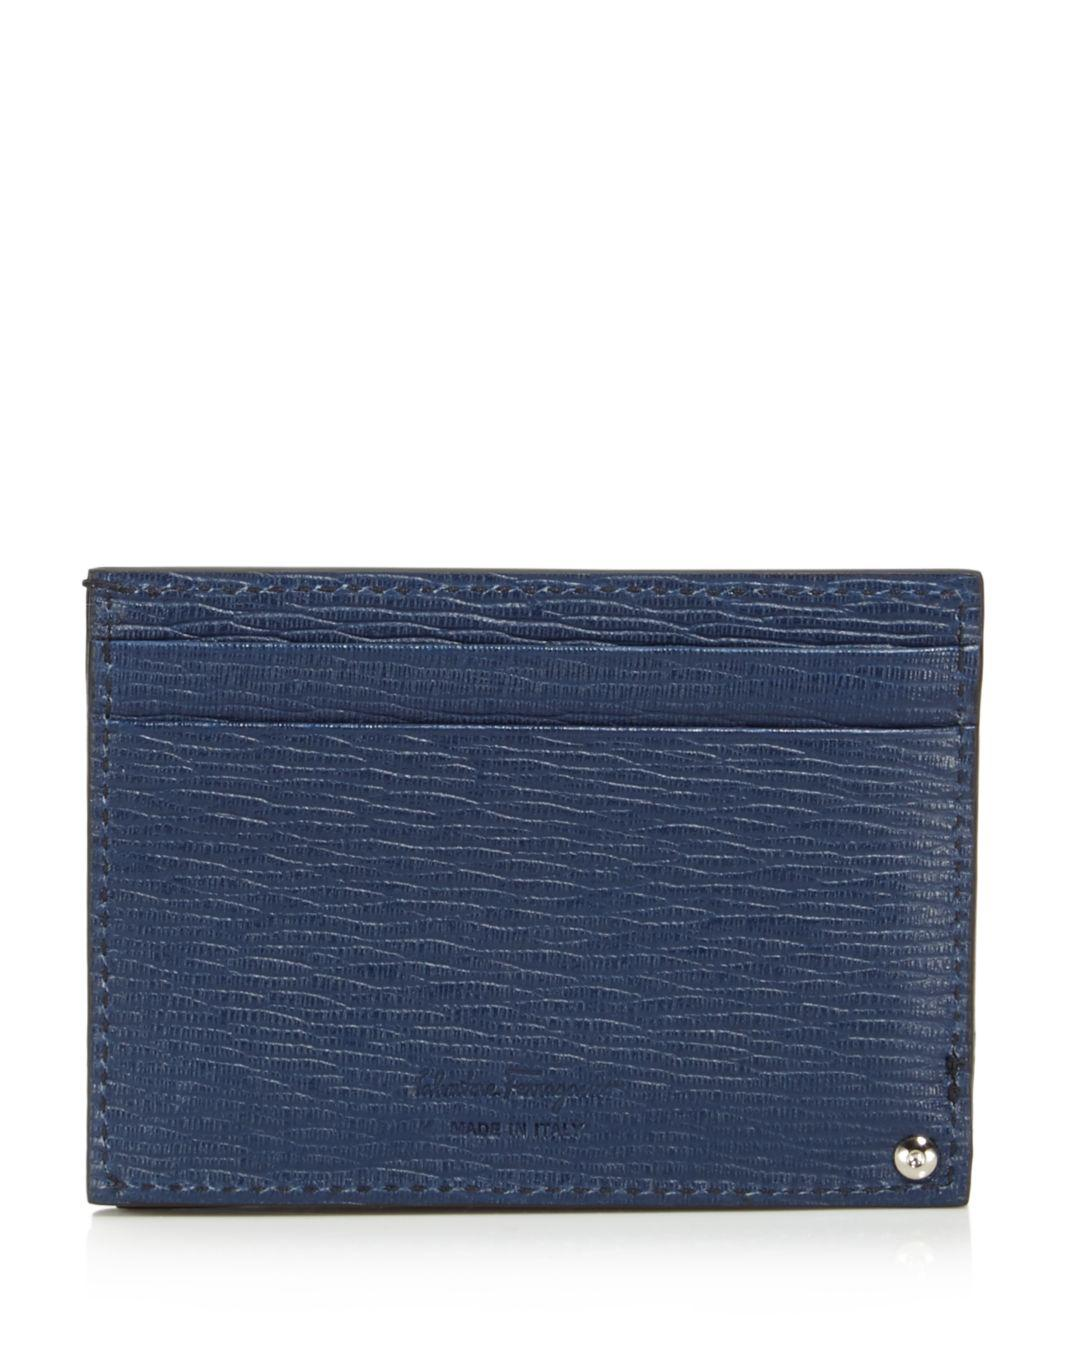 e1d144219aa Lyst - Ferragamo Revival Card Case With Id in Blue for Men - Save 25%